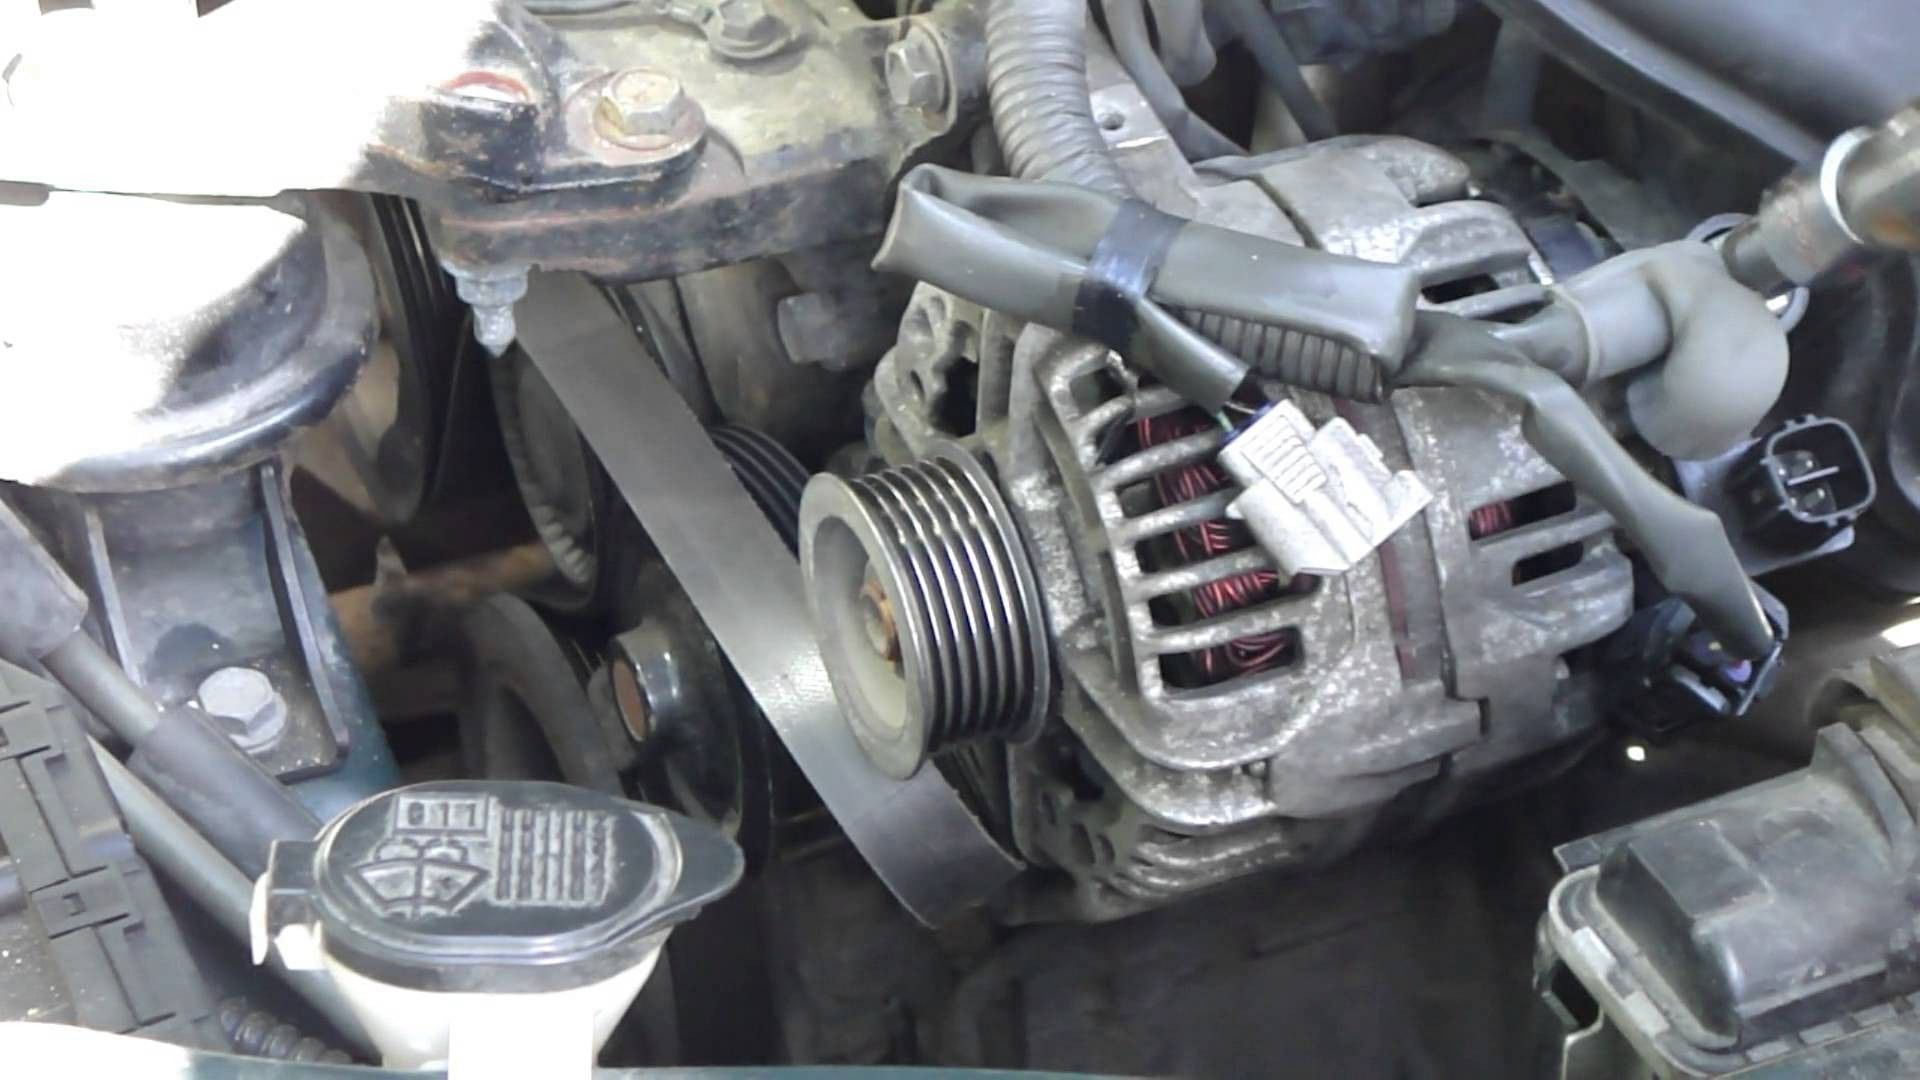 99 toyota Camry Engine Diagram How to Change Alternator toyota Corolla Vvt I Engine Years 2000 Of 99 toyota Camry Engine Diagram